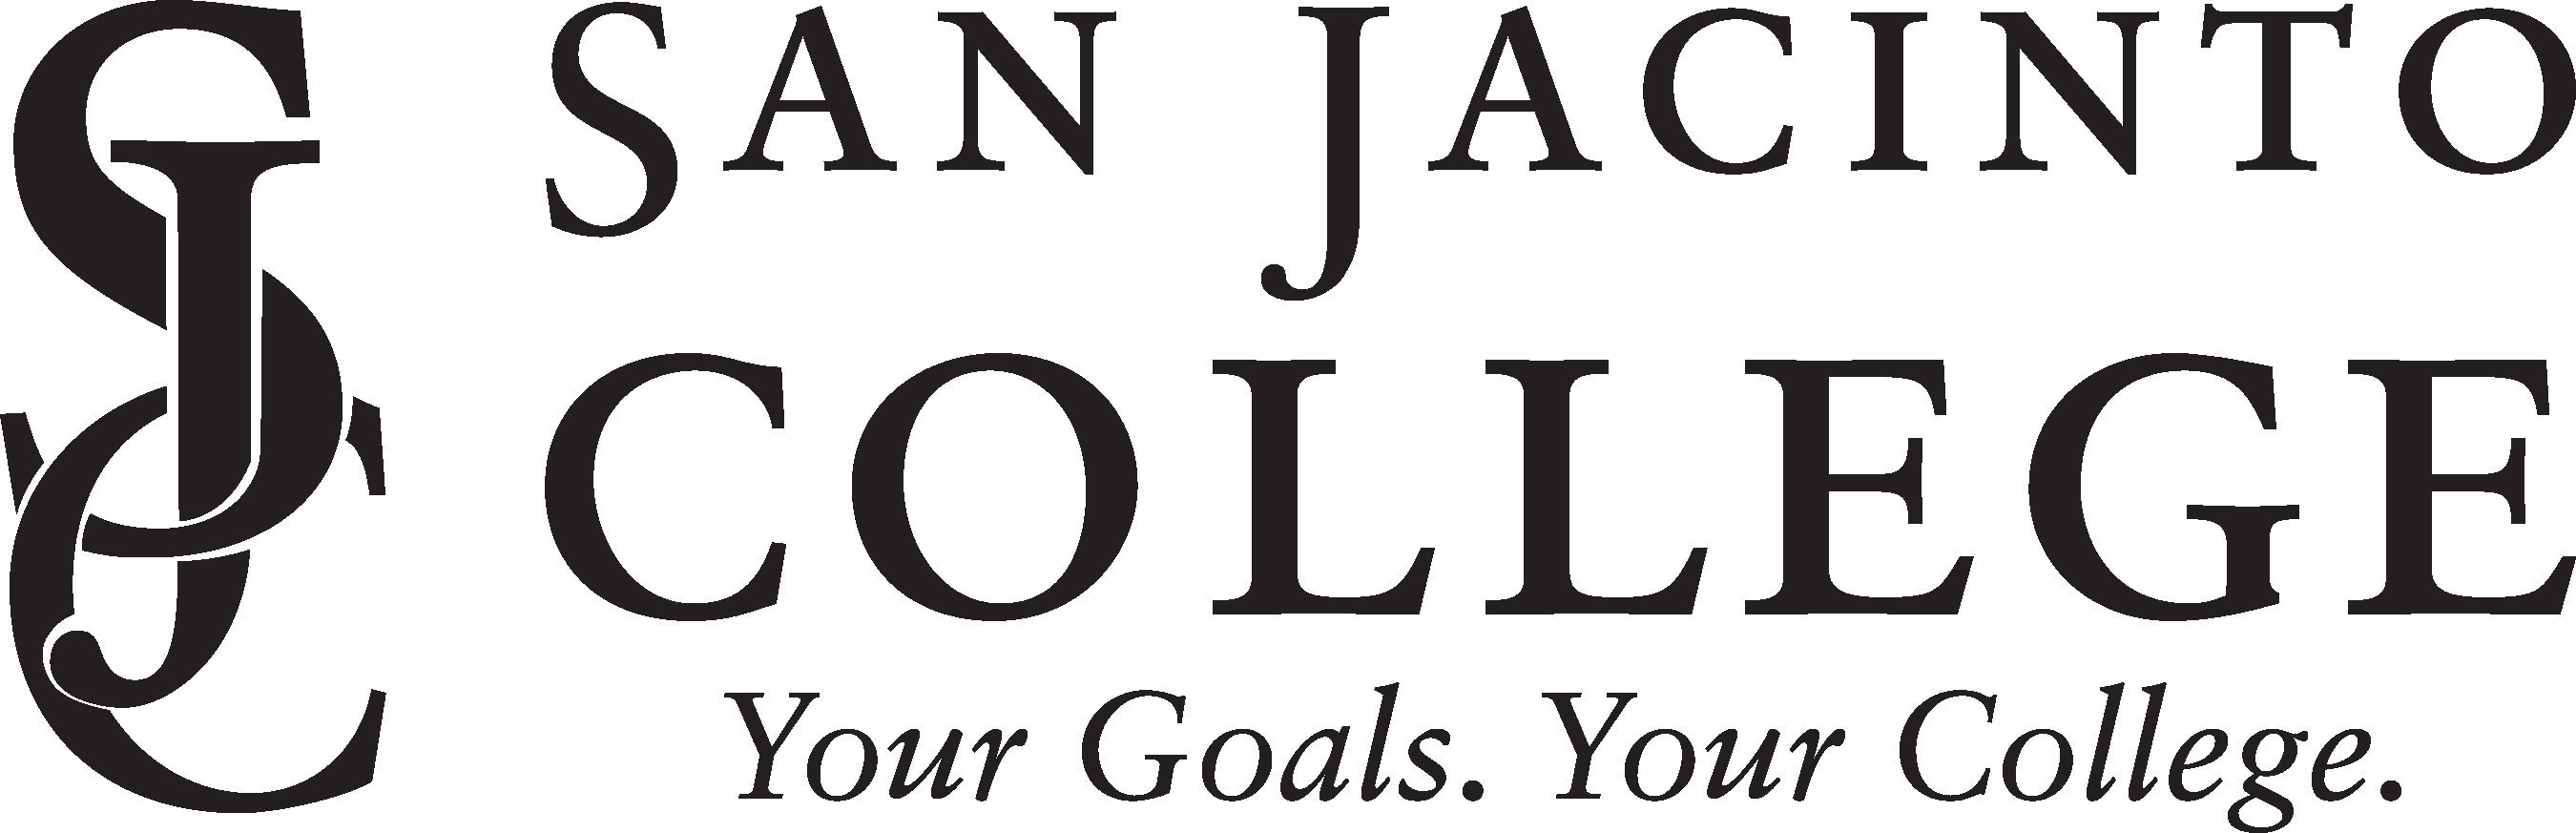 San Jacinto College has been serving the citizens of East Harris County, Texas, for more than 50 years.